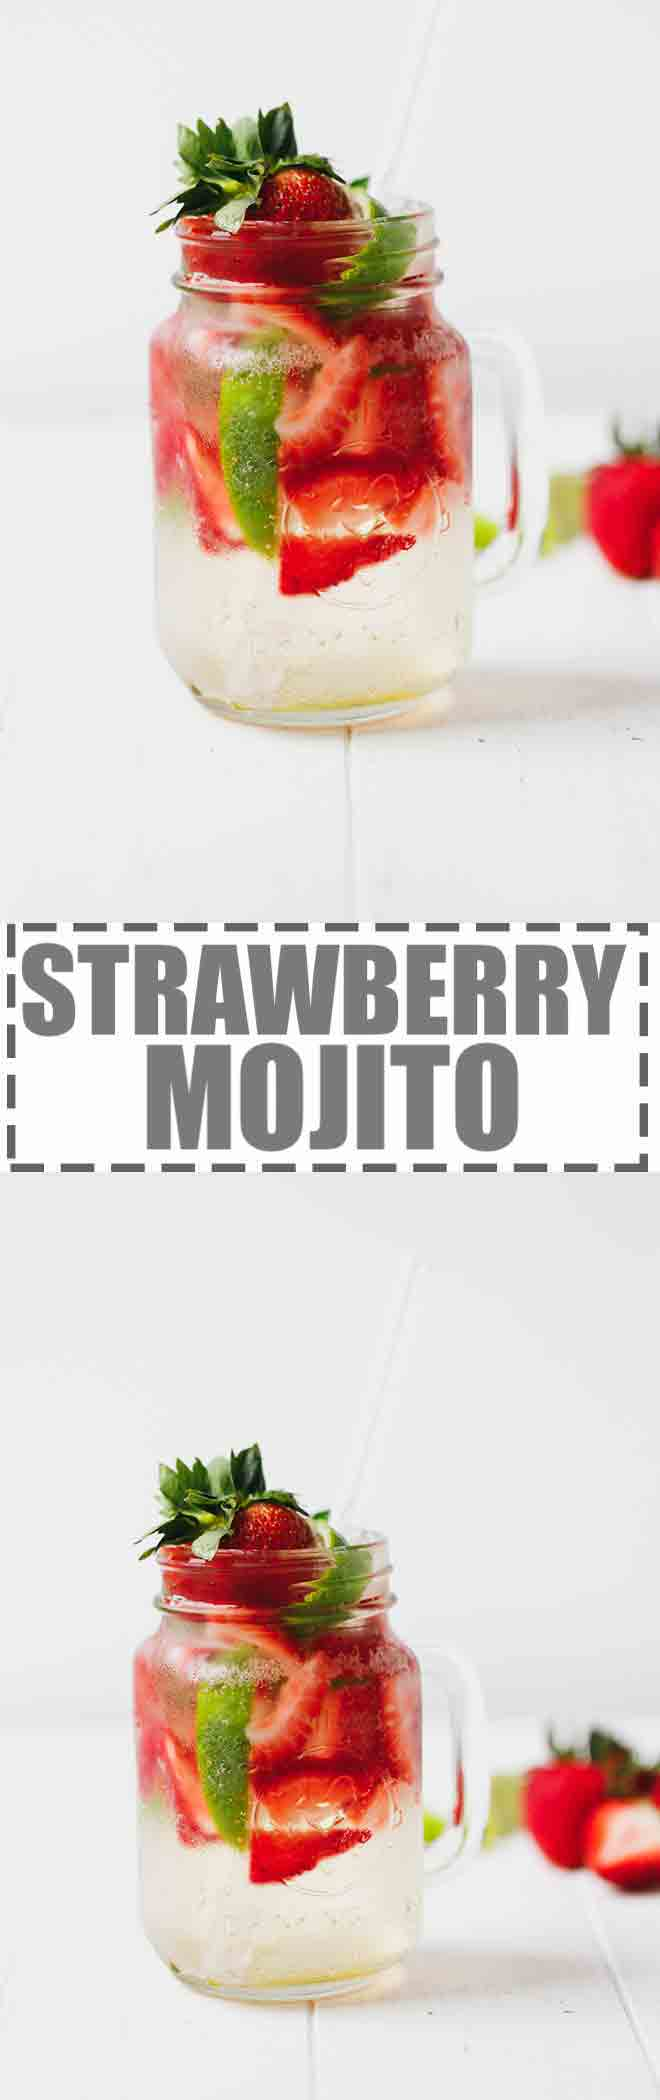 Refreshing and Delicious Strawberry Mojito With Simple Syrup Easy Recipe. Easy to make and great for summer. #mojito #strawberries #cocktail